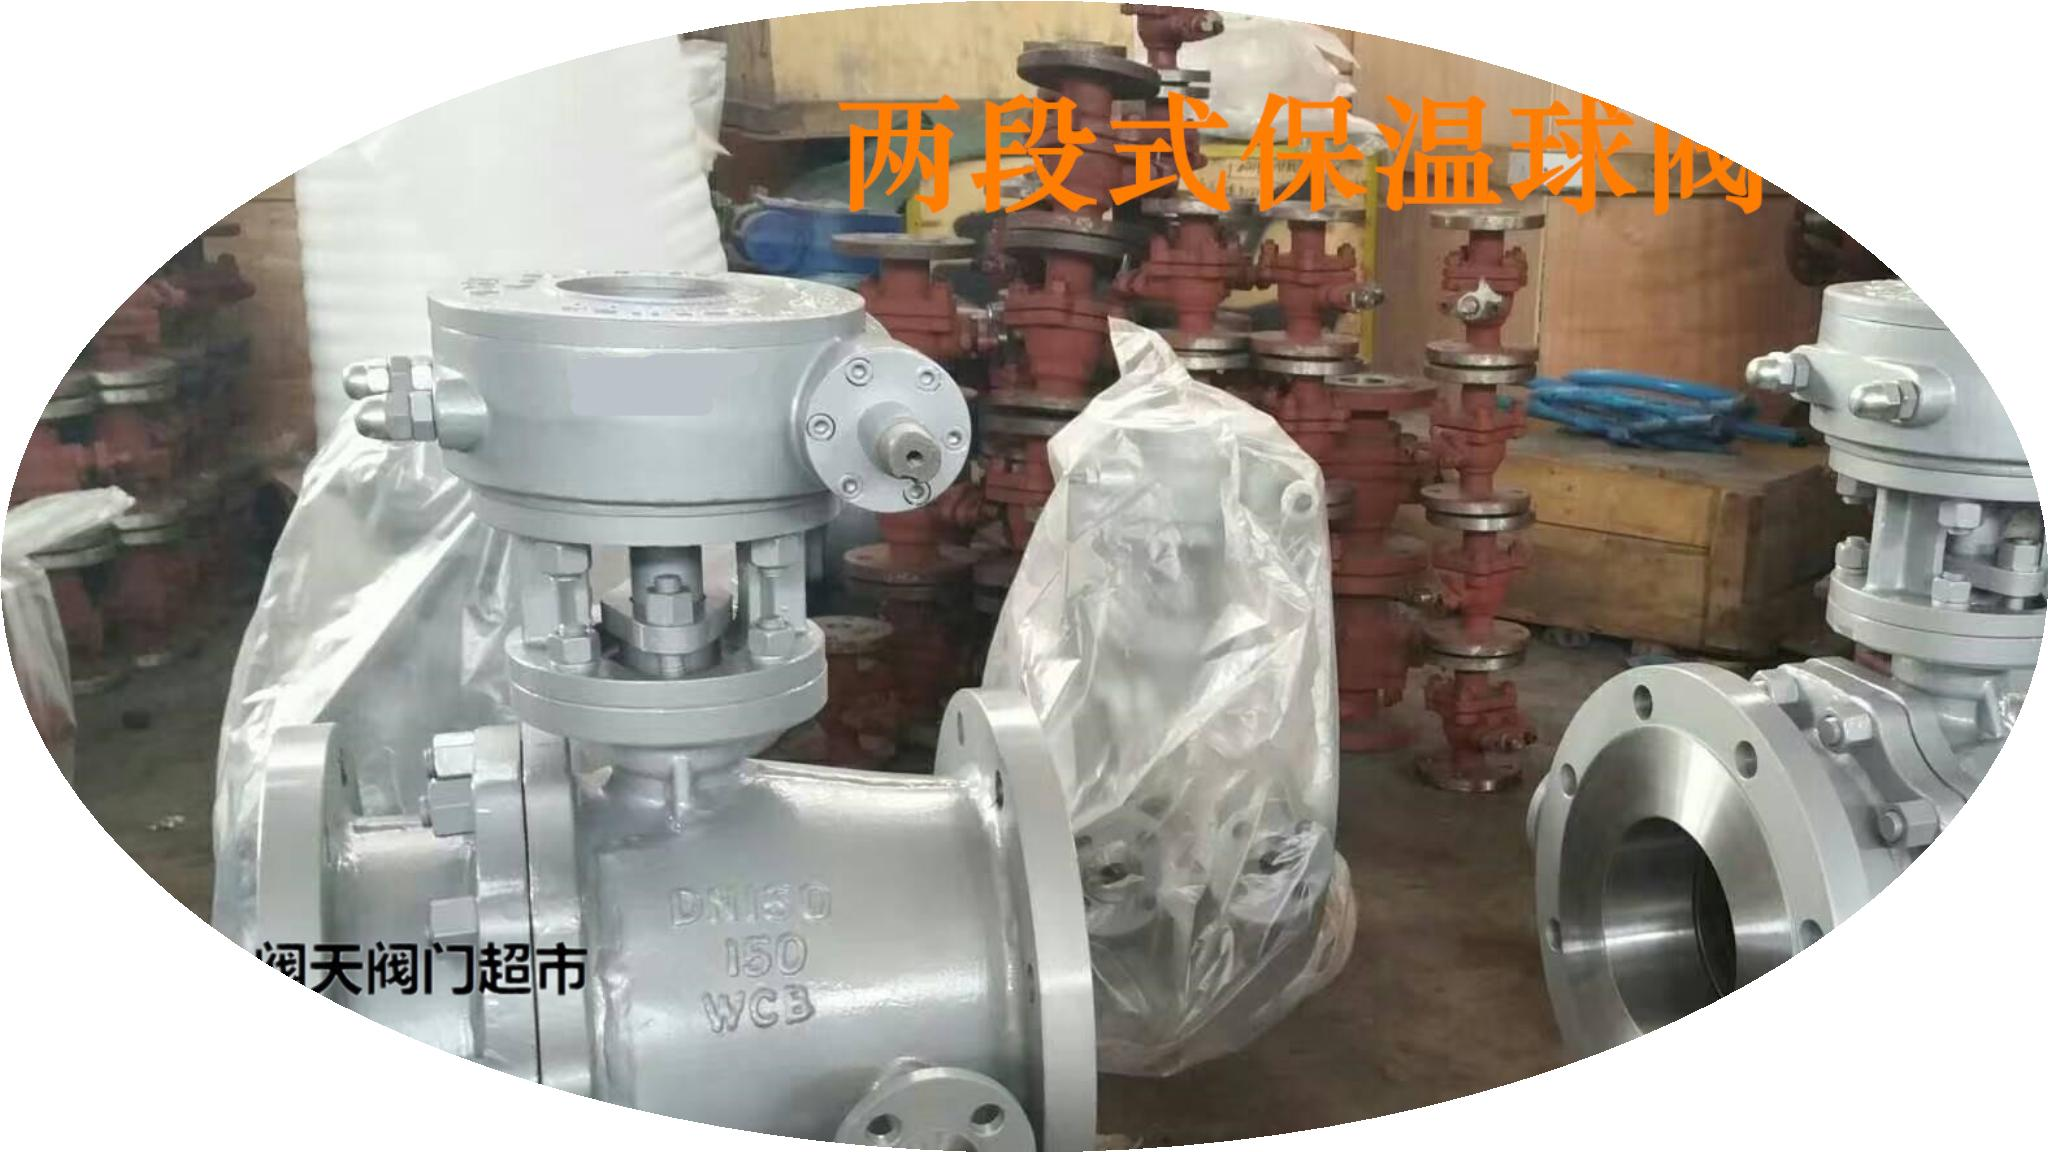 Integrated two section stainless steel casting jacket insulation ball valve bq41f-16pc flange jacket insulation ball valve